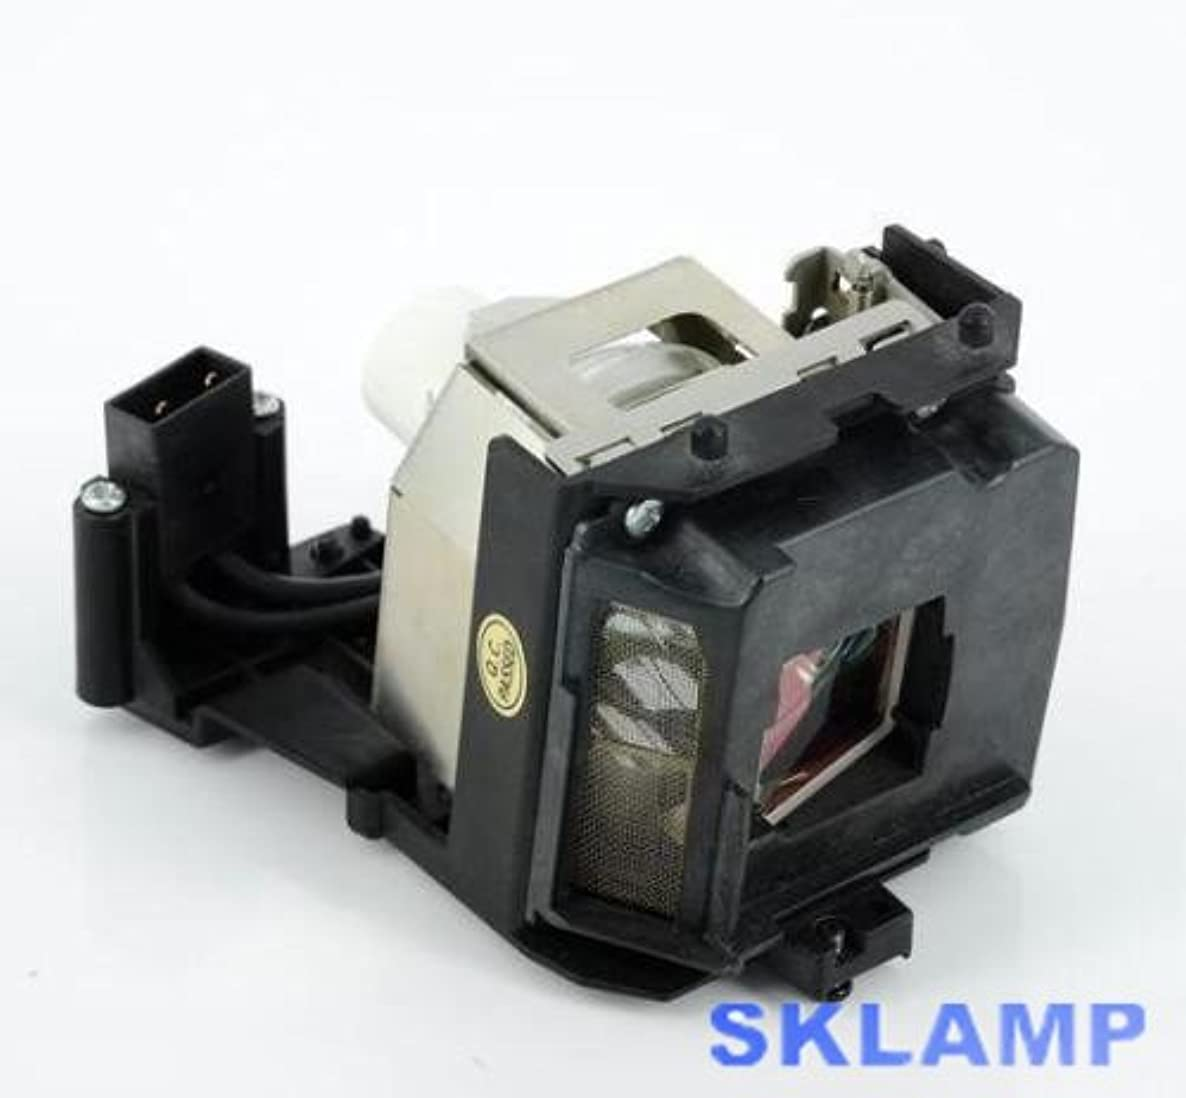 SKlamp AN-F212LP Compatible Projector Lamp with Housing for Sharp PG-F212X,PG-F212X-L,PG-F255W,PG-F255X,PG-F262X,PG-F325L